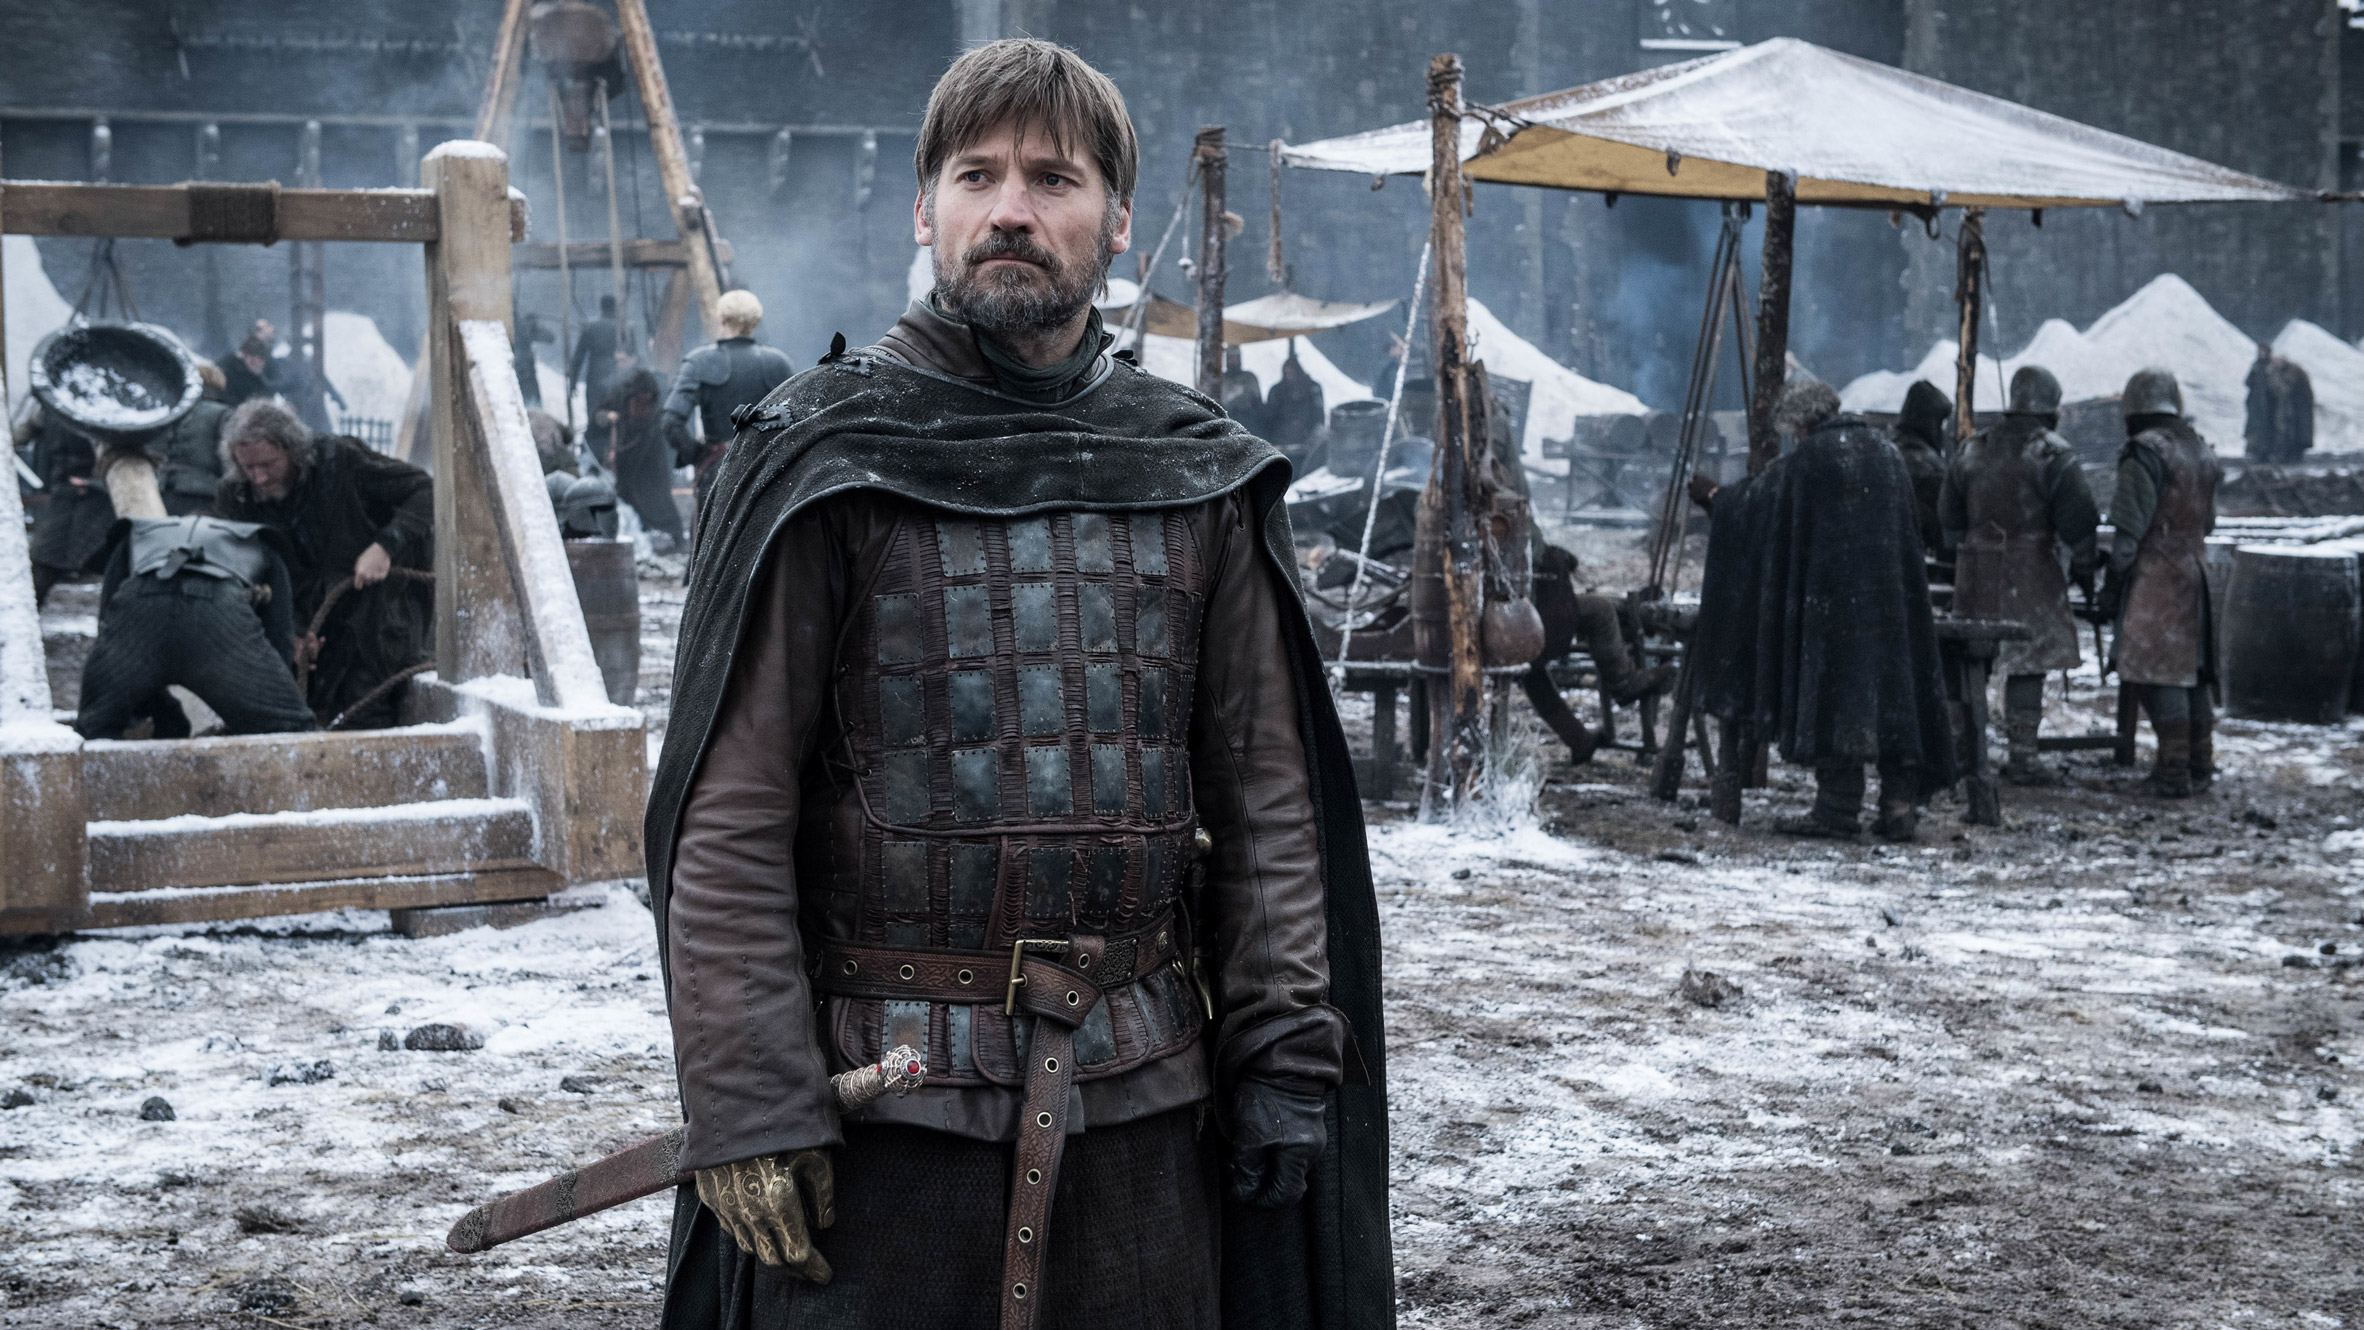 Bjarke Ingels has made a cameo on Game of Thrones with his frien Nikolaj Coster-Waldau